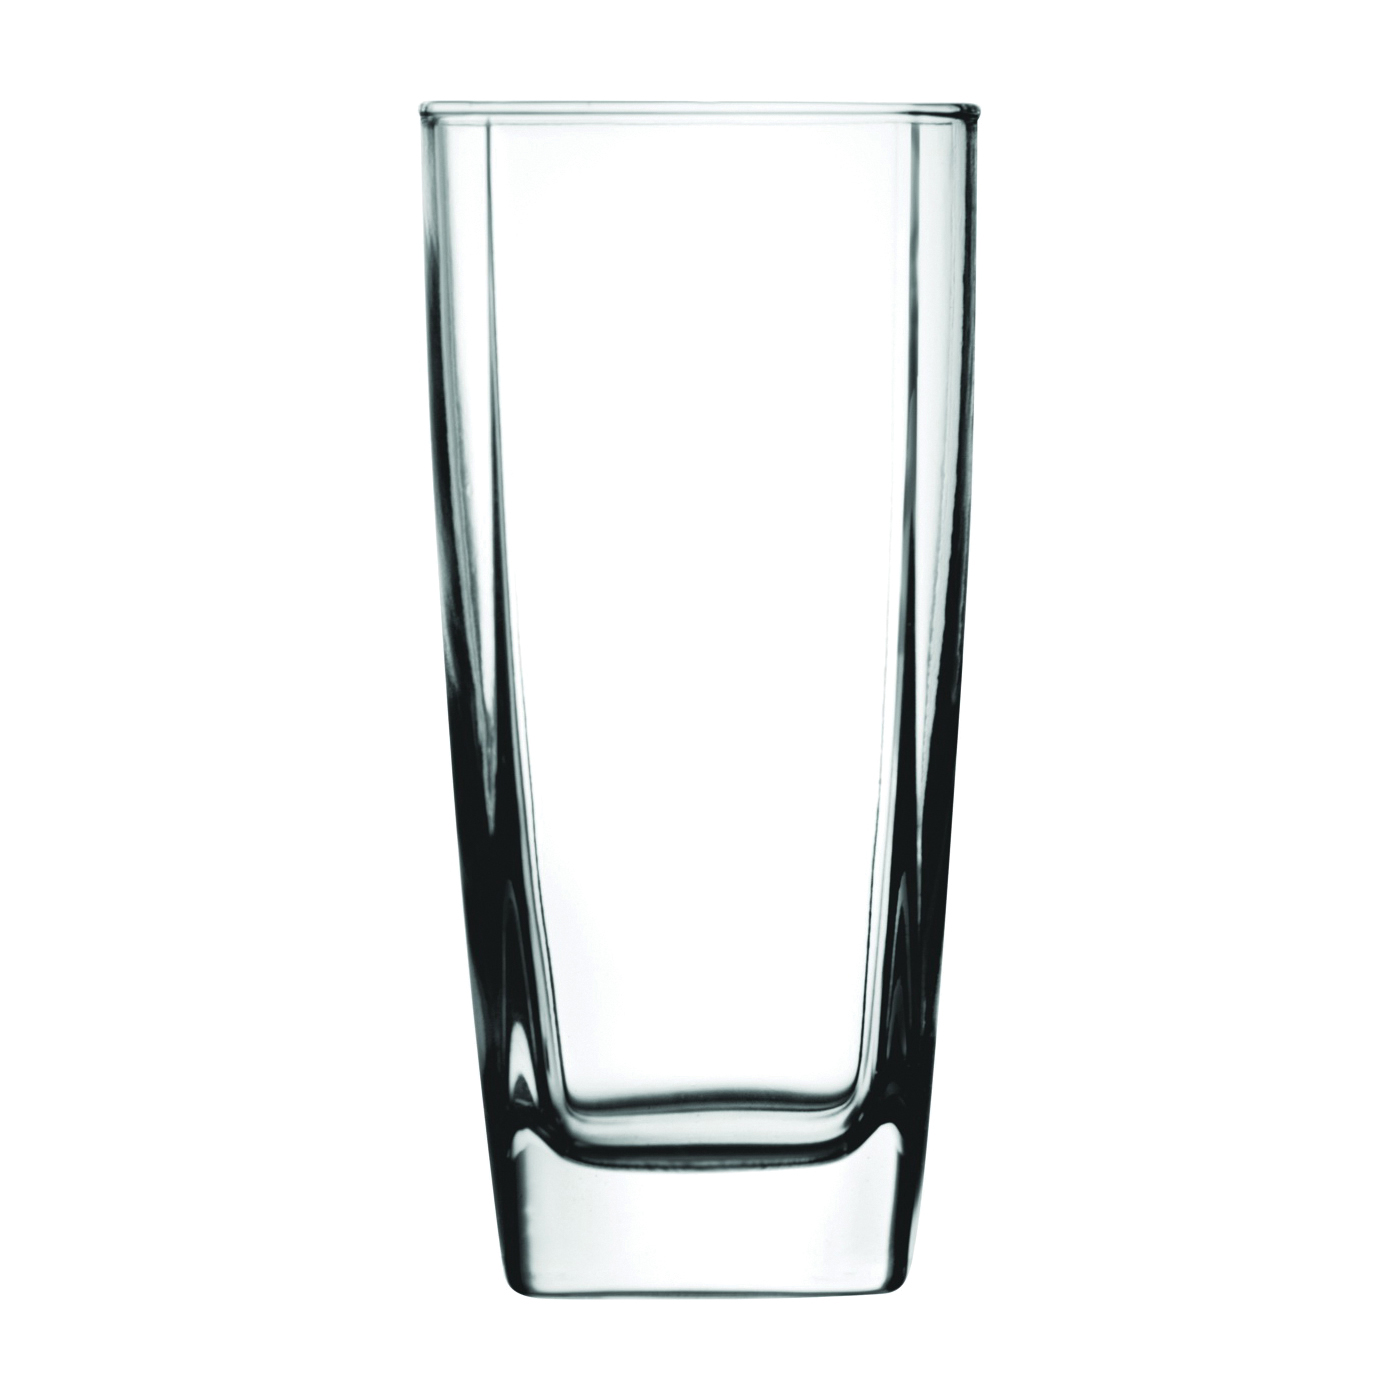 Picture of Anchor Hocking 80780L13 Rio Tumbler, 16 oz Capacity, Glass, Clear, Dishwasher Safe: Yes